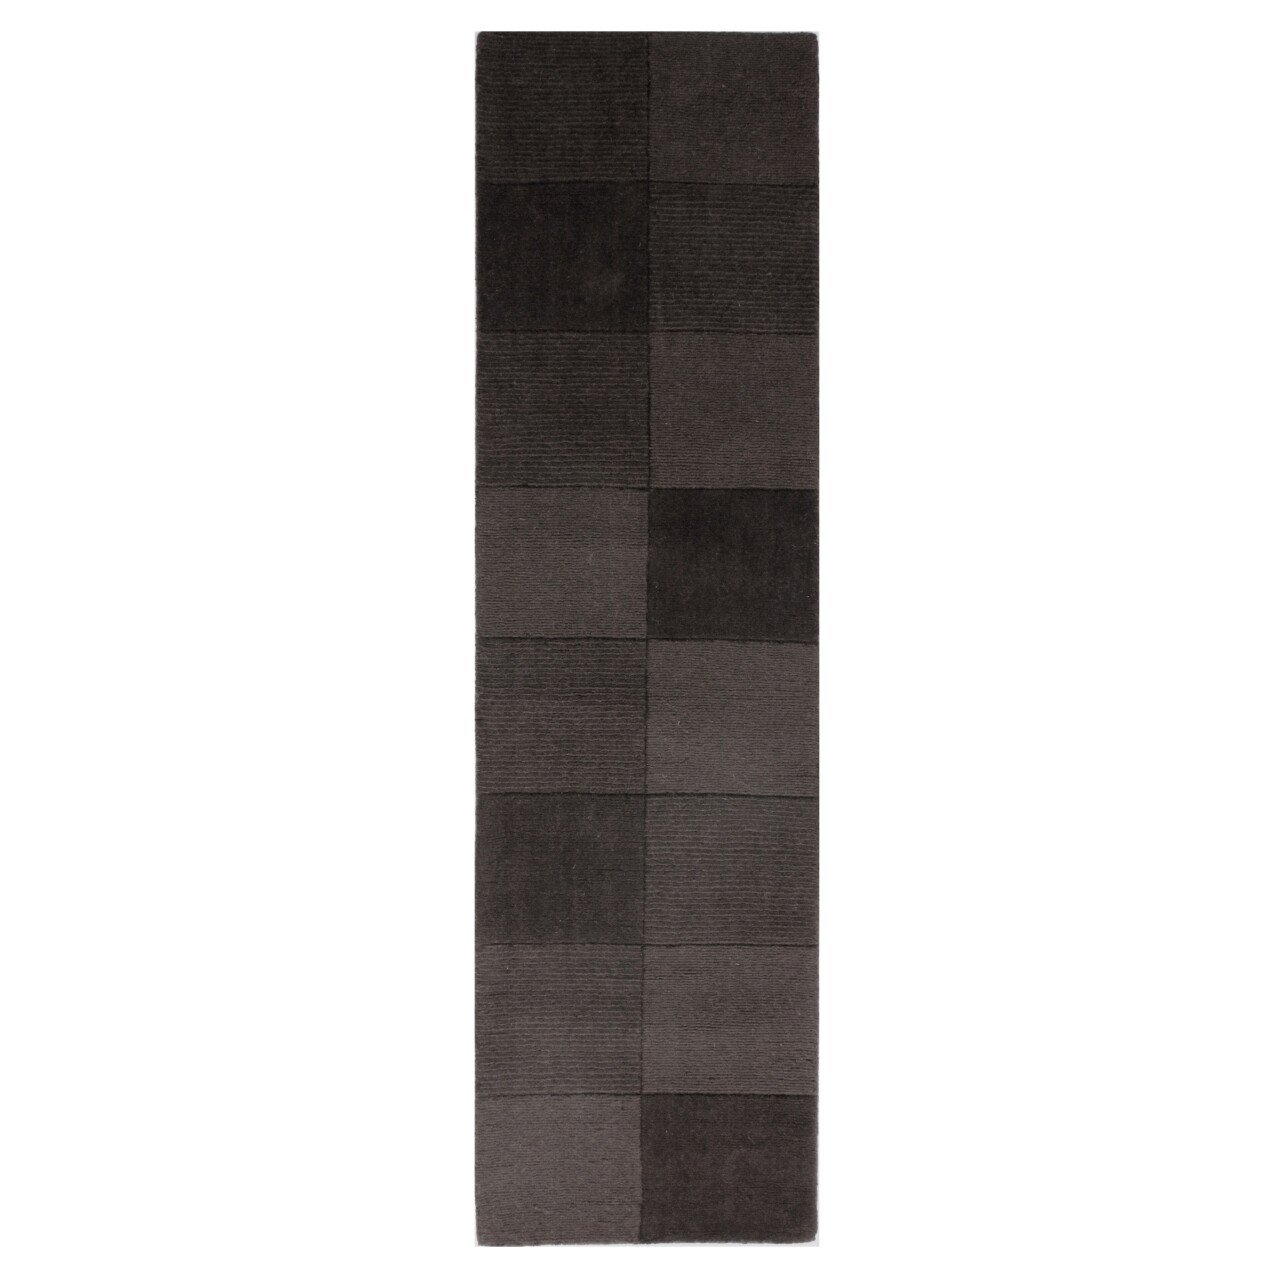 Covor Wool Squares Black , Flair Rugs, 60 x 230 cm, 100% lana, negru